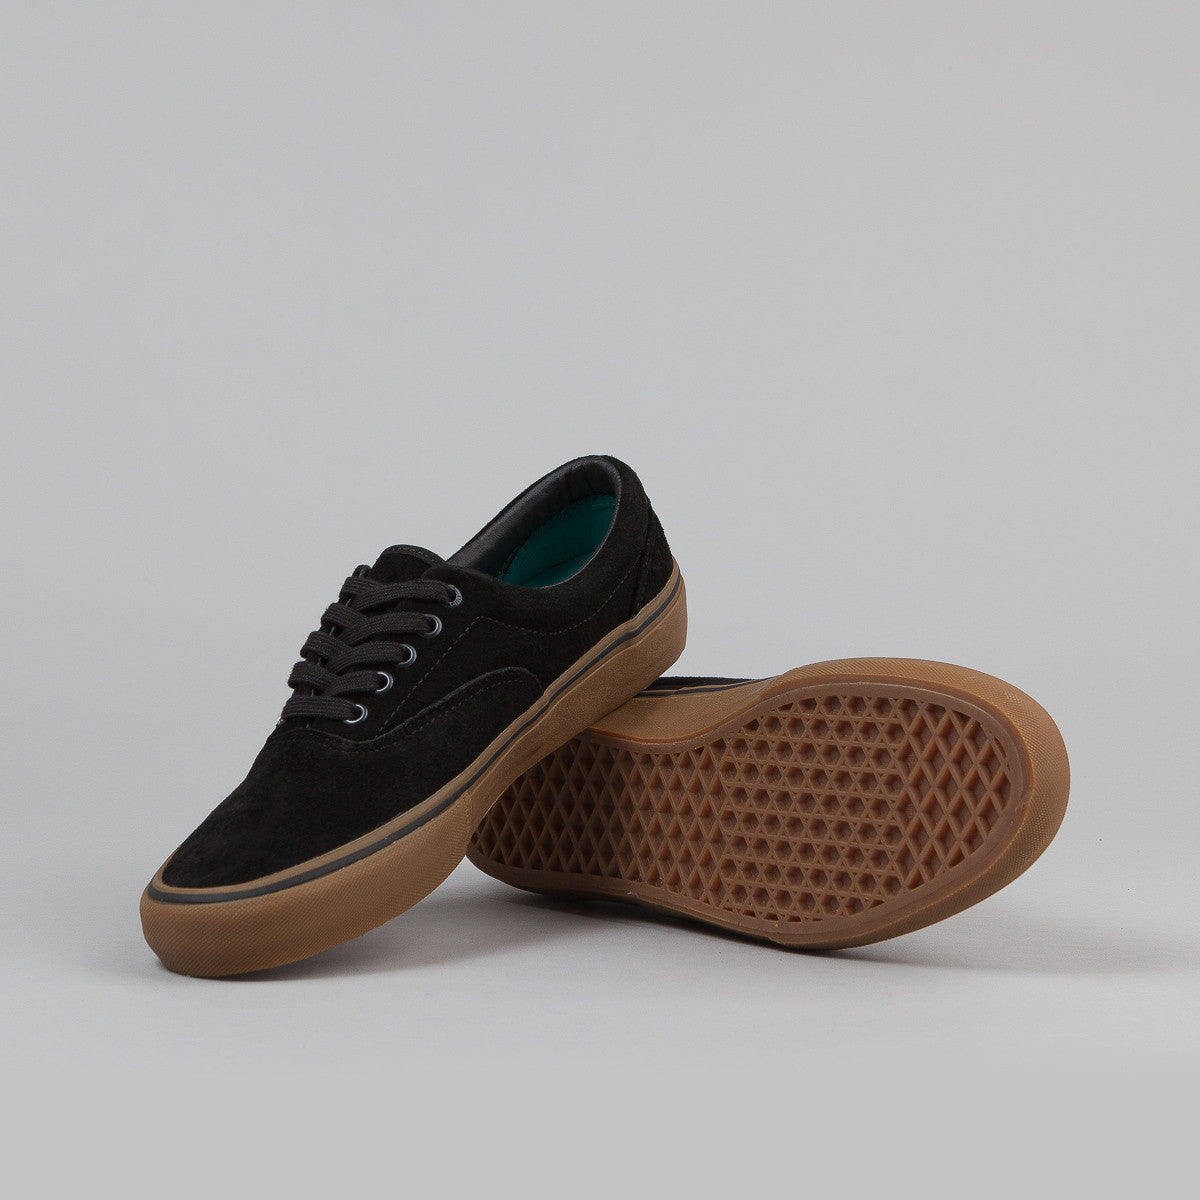 Vans Era Pro Skate Shoes - Black / Gum